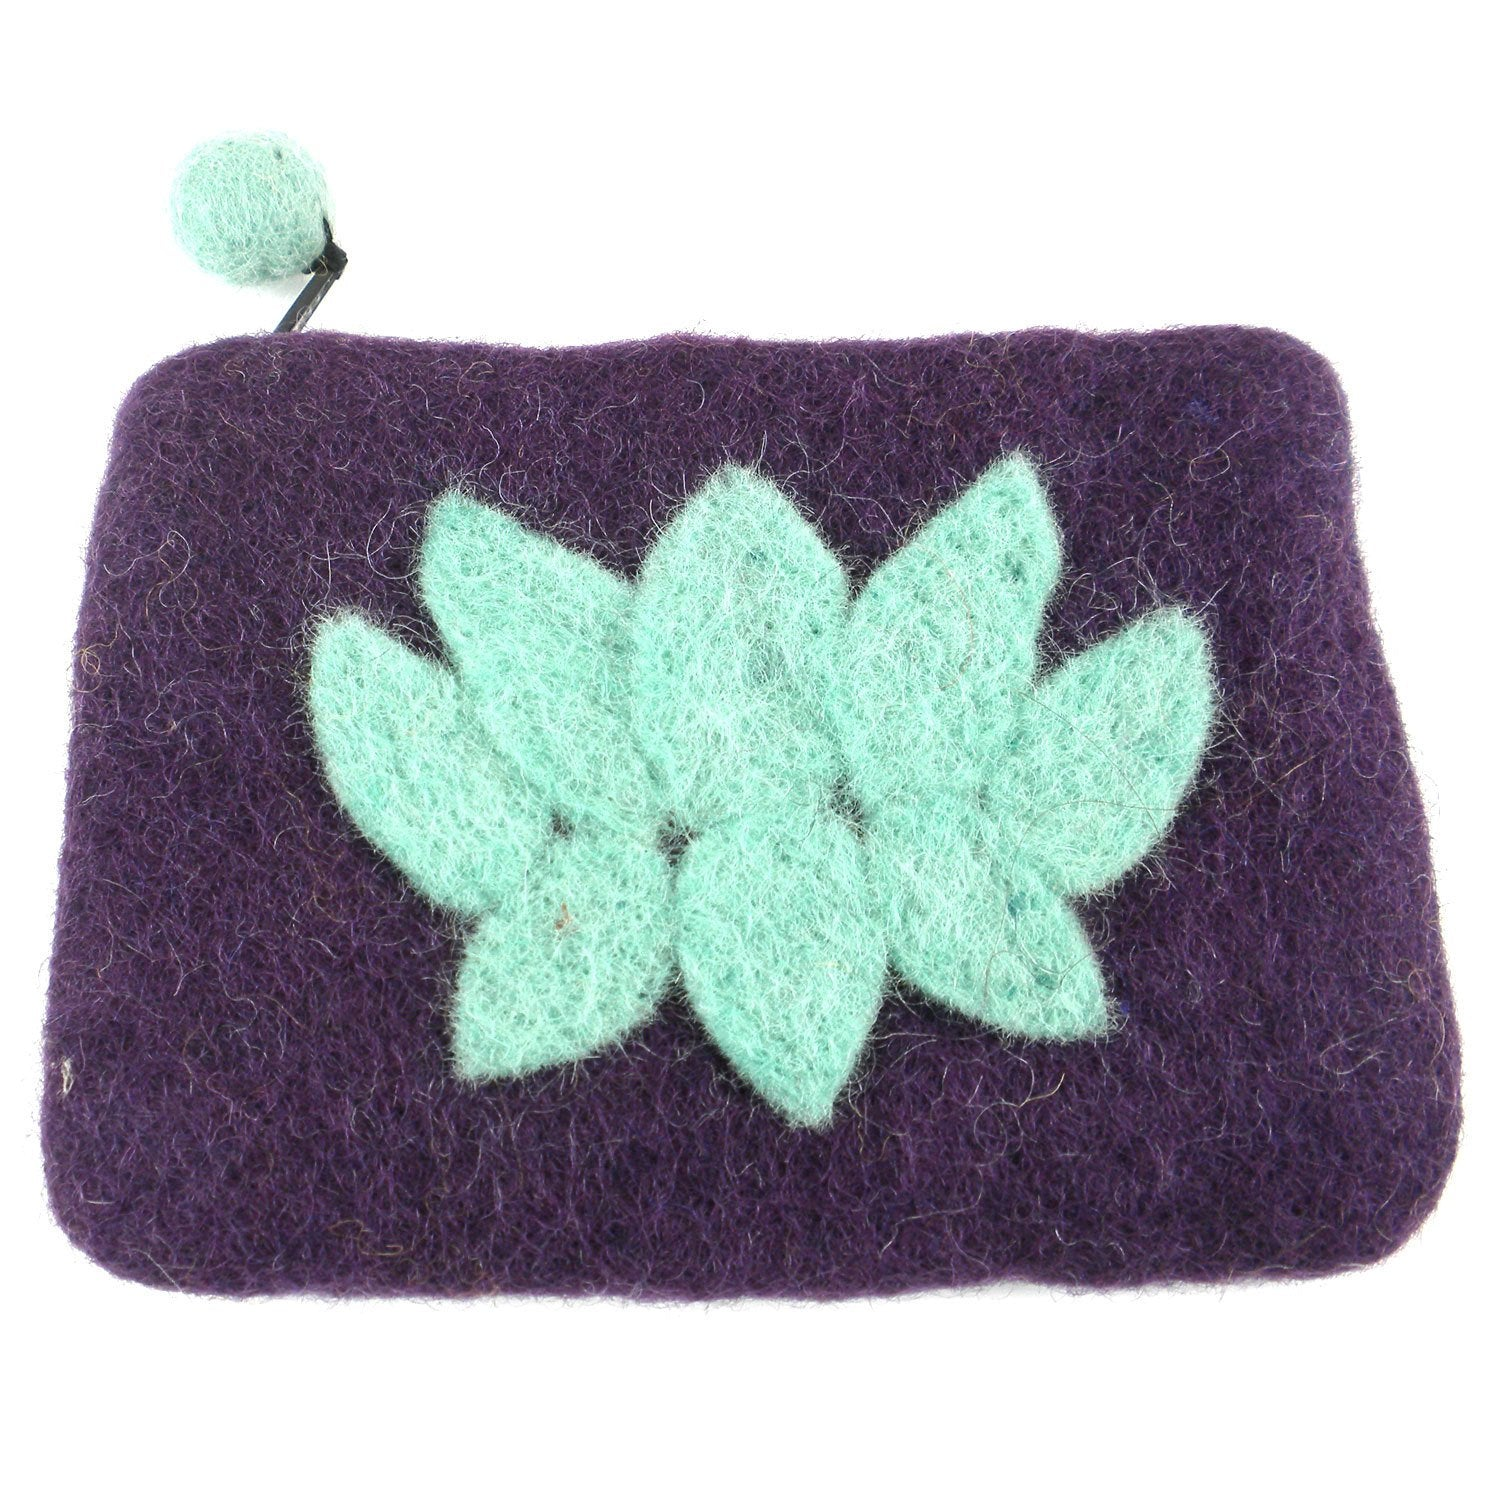 Lotus Flower Felt Coin Purse - Wine